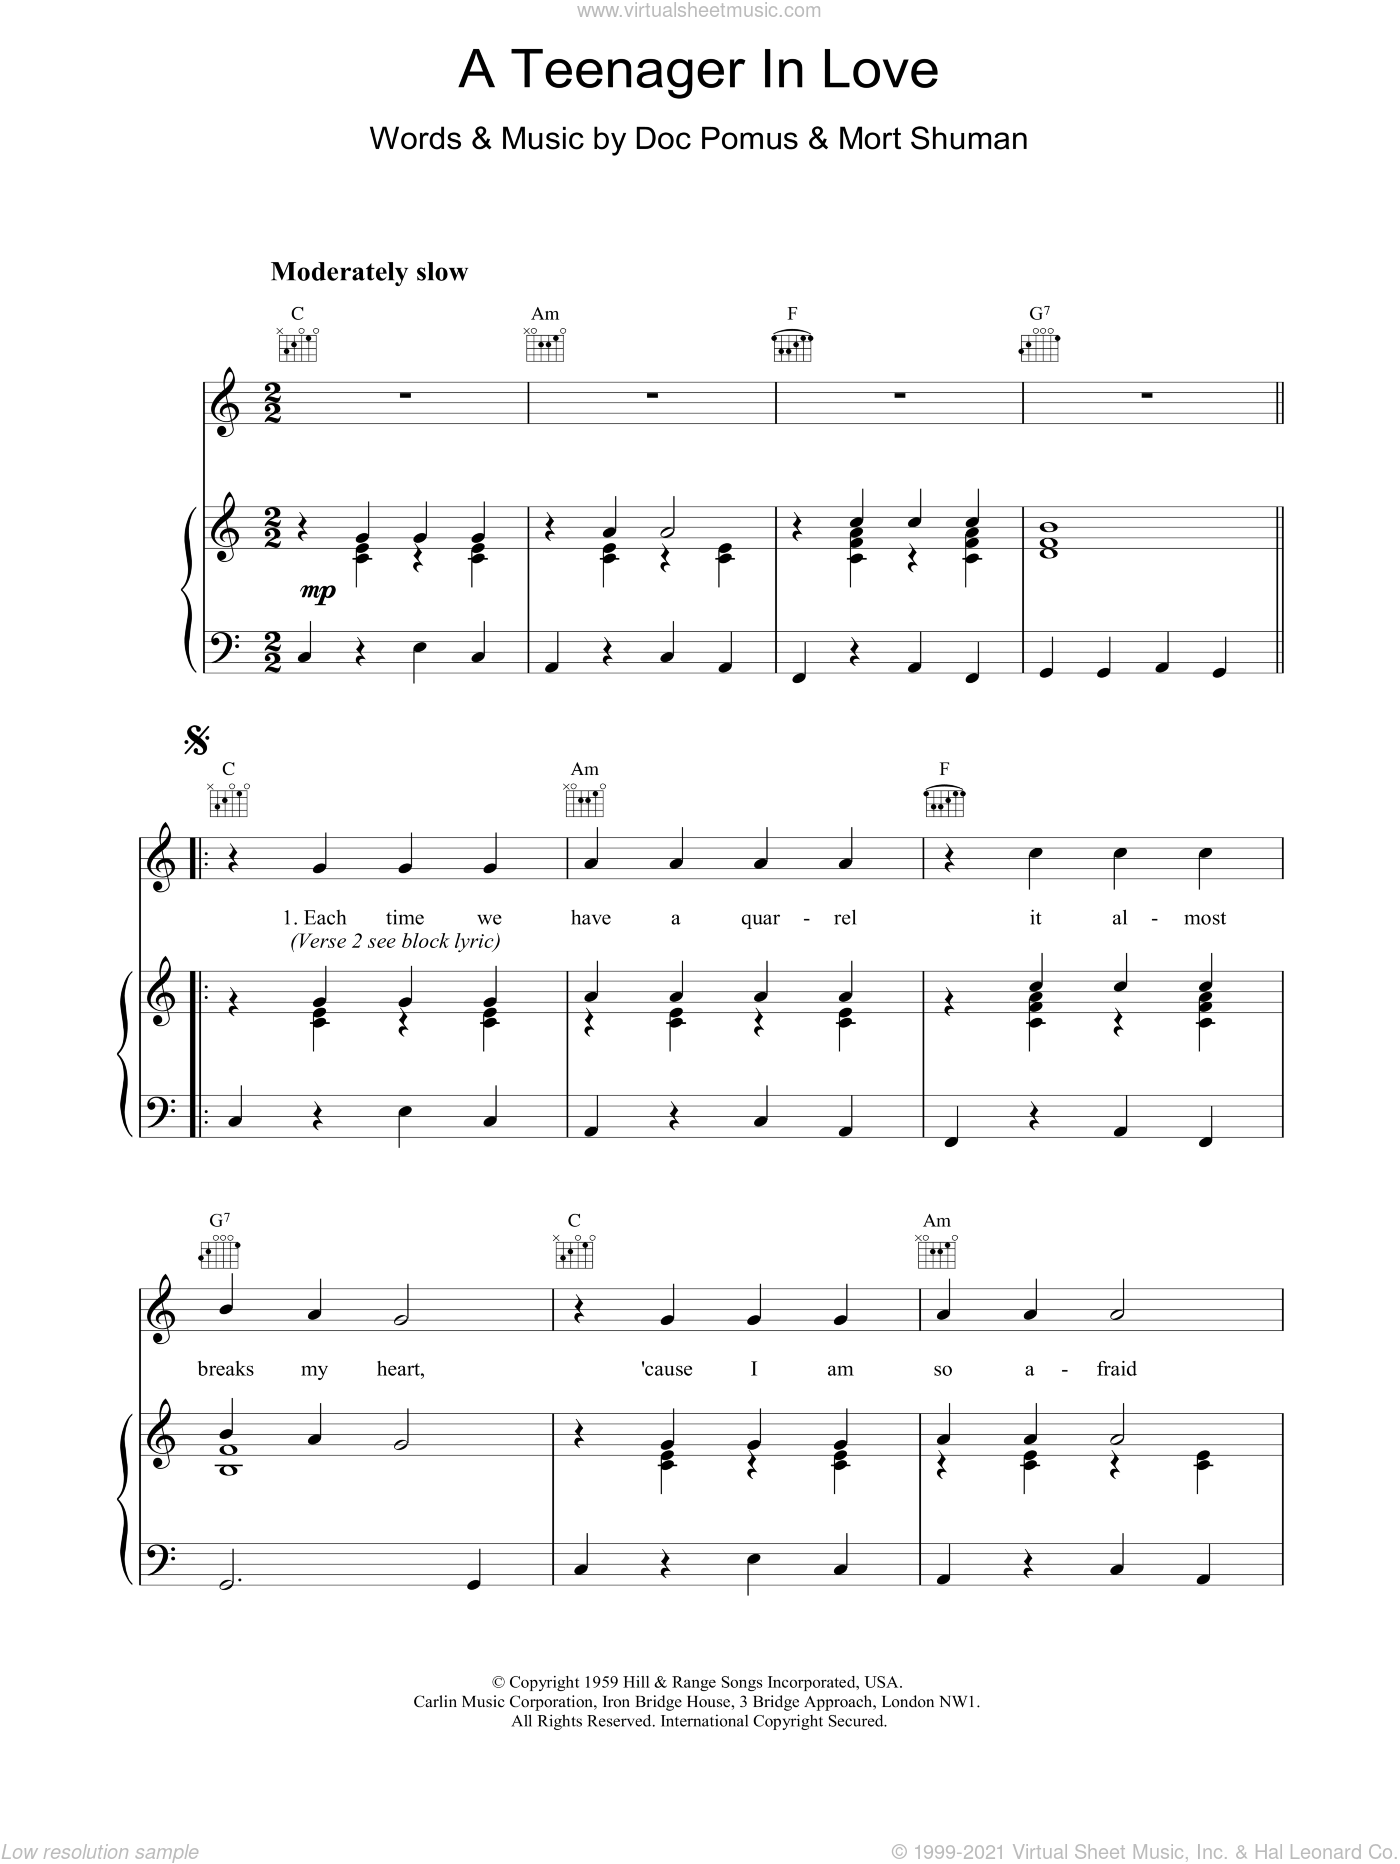 A Teenager In Love sheet music for voice, piano or guitar by Dion & The Belmonts, Doc Pomus and Mort Shuman. Score Image Preview.